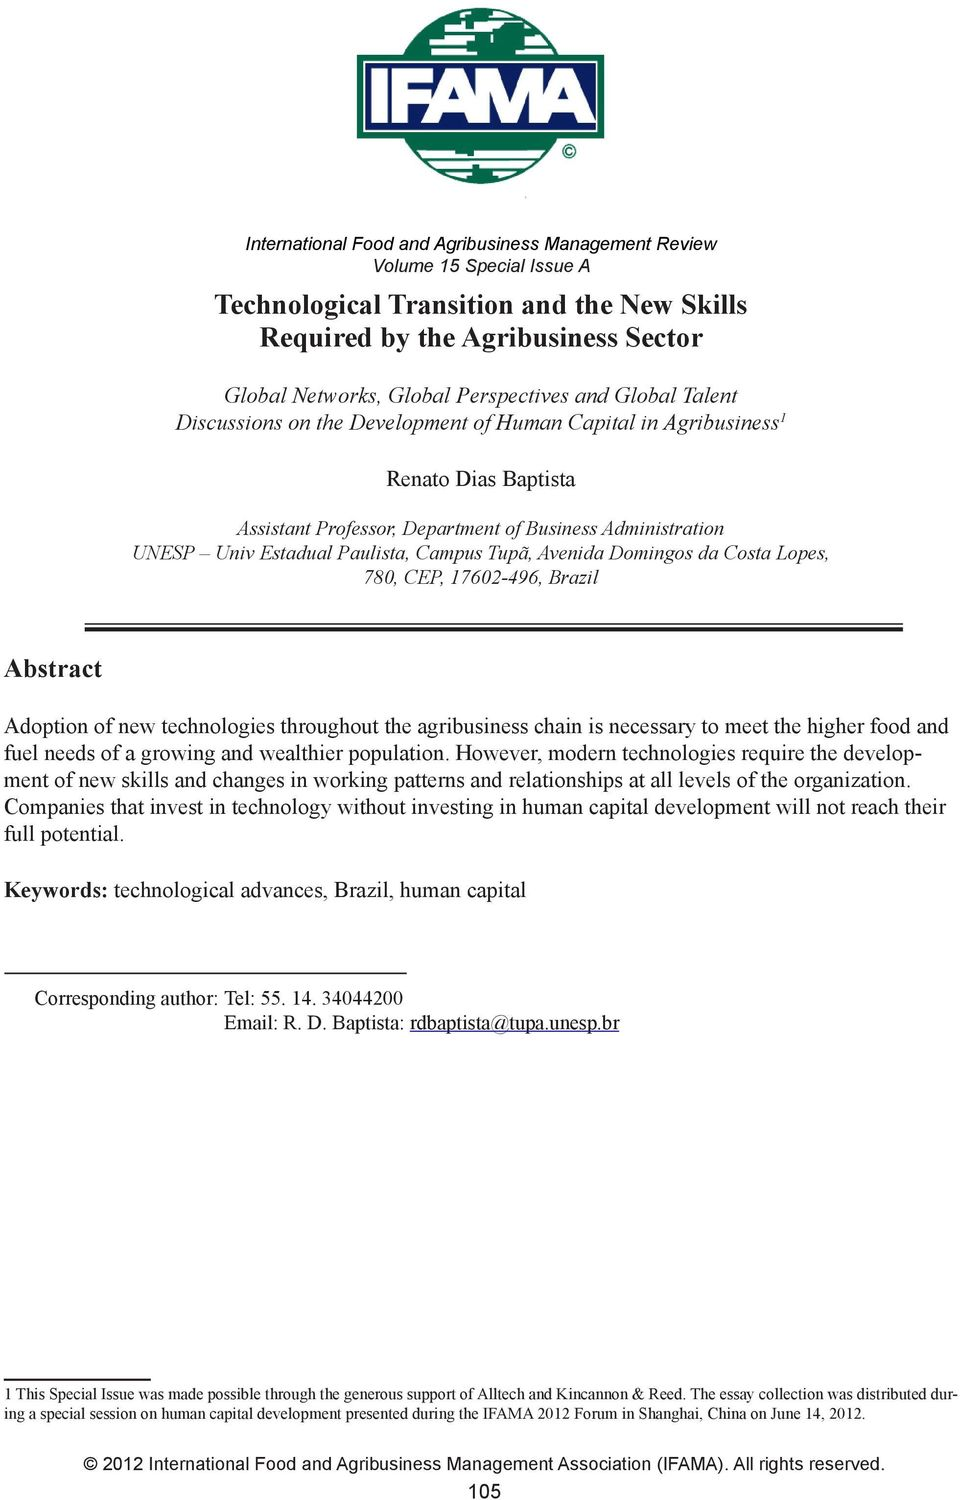 Campus Tupã, Avenida Domingos da Costa Lopes, 780, CEP, 17602-496, Brazil Abstract Adoption of new technologies throughout the agribusiness chain is necessary to meet the higher food and fuel needs